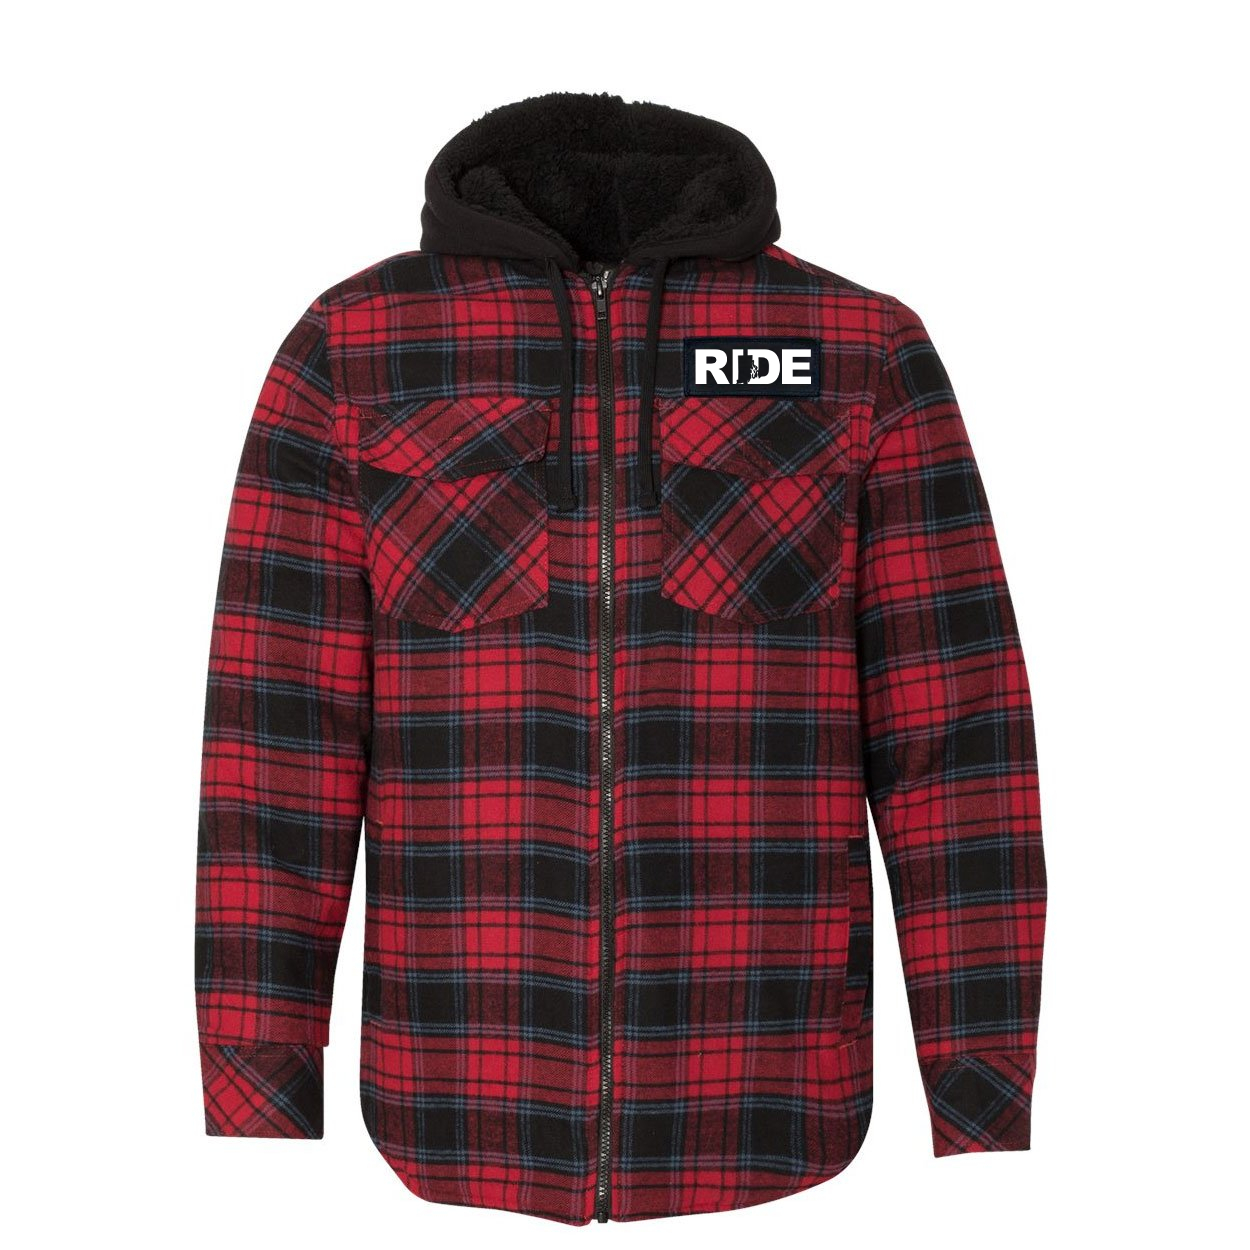 Ride Rhode Island Classic Unisex Full Zip Woven Patch Hooded Flannel Jacket Red/Black Buffalo (White Logo)